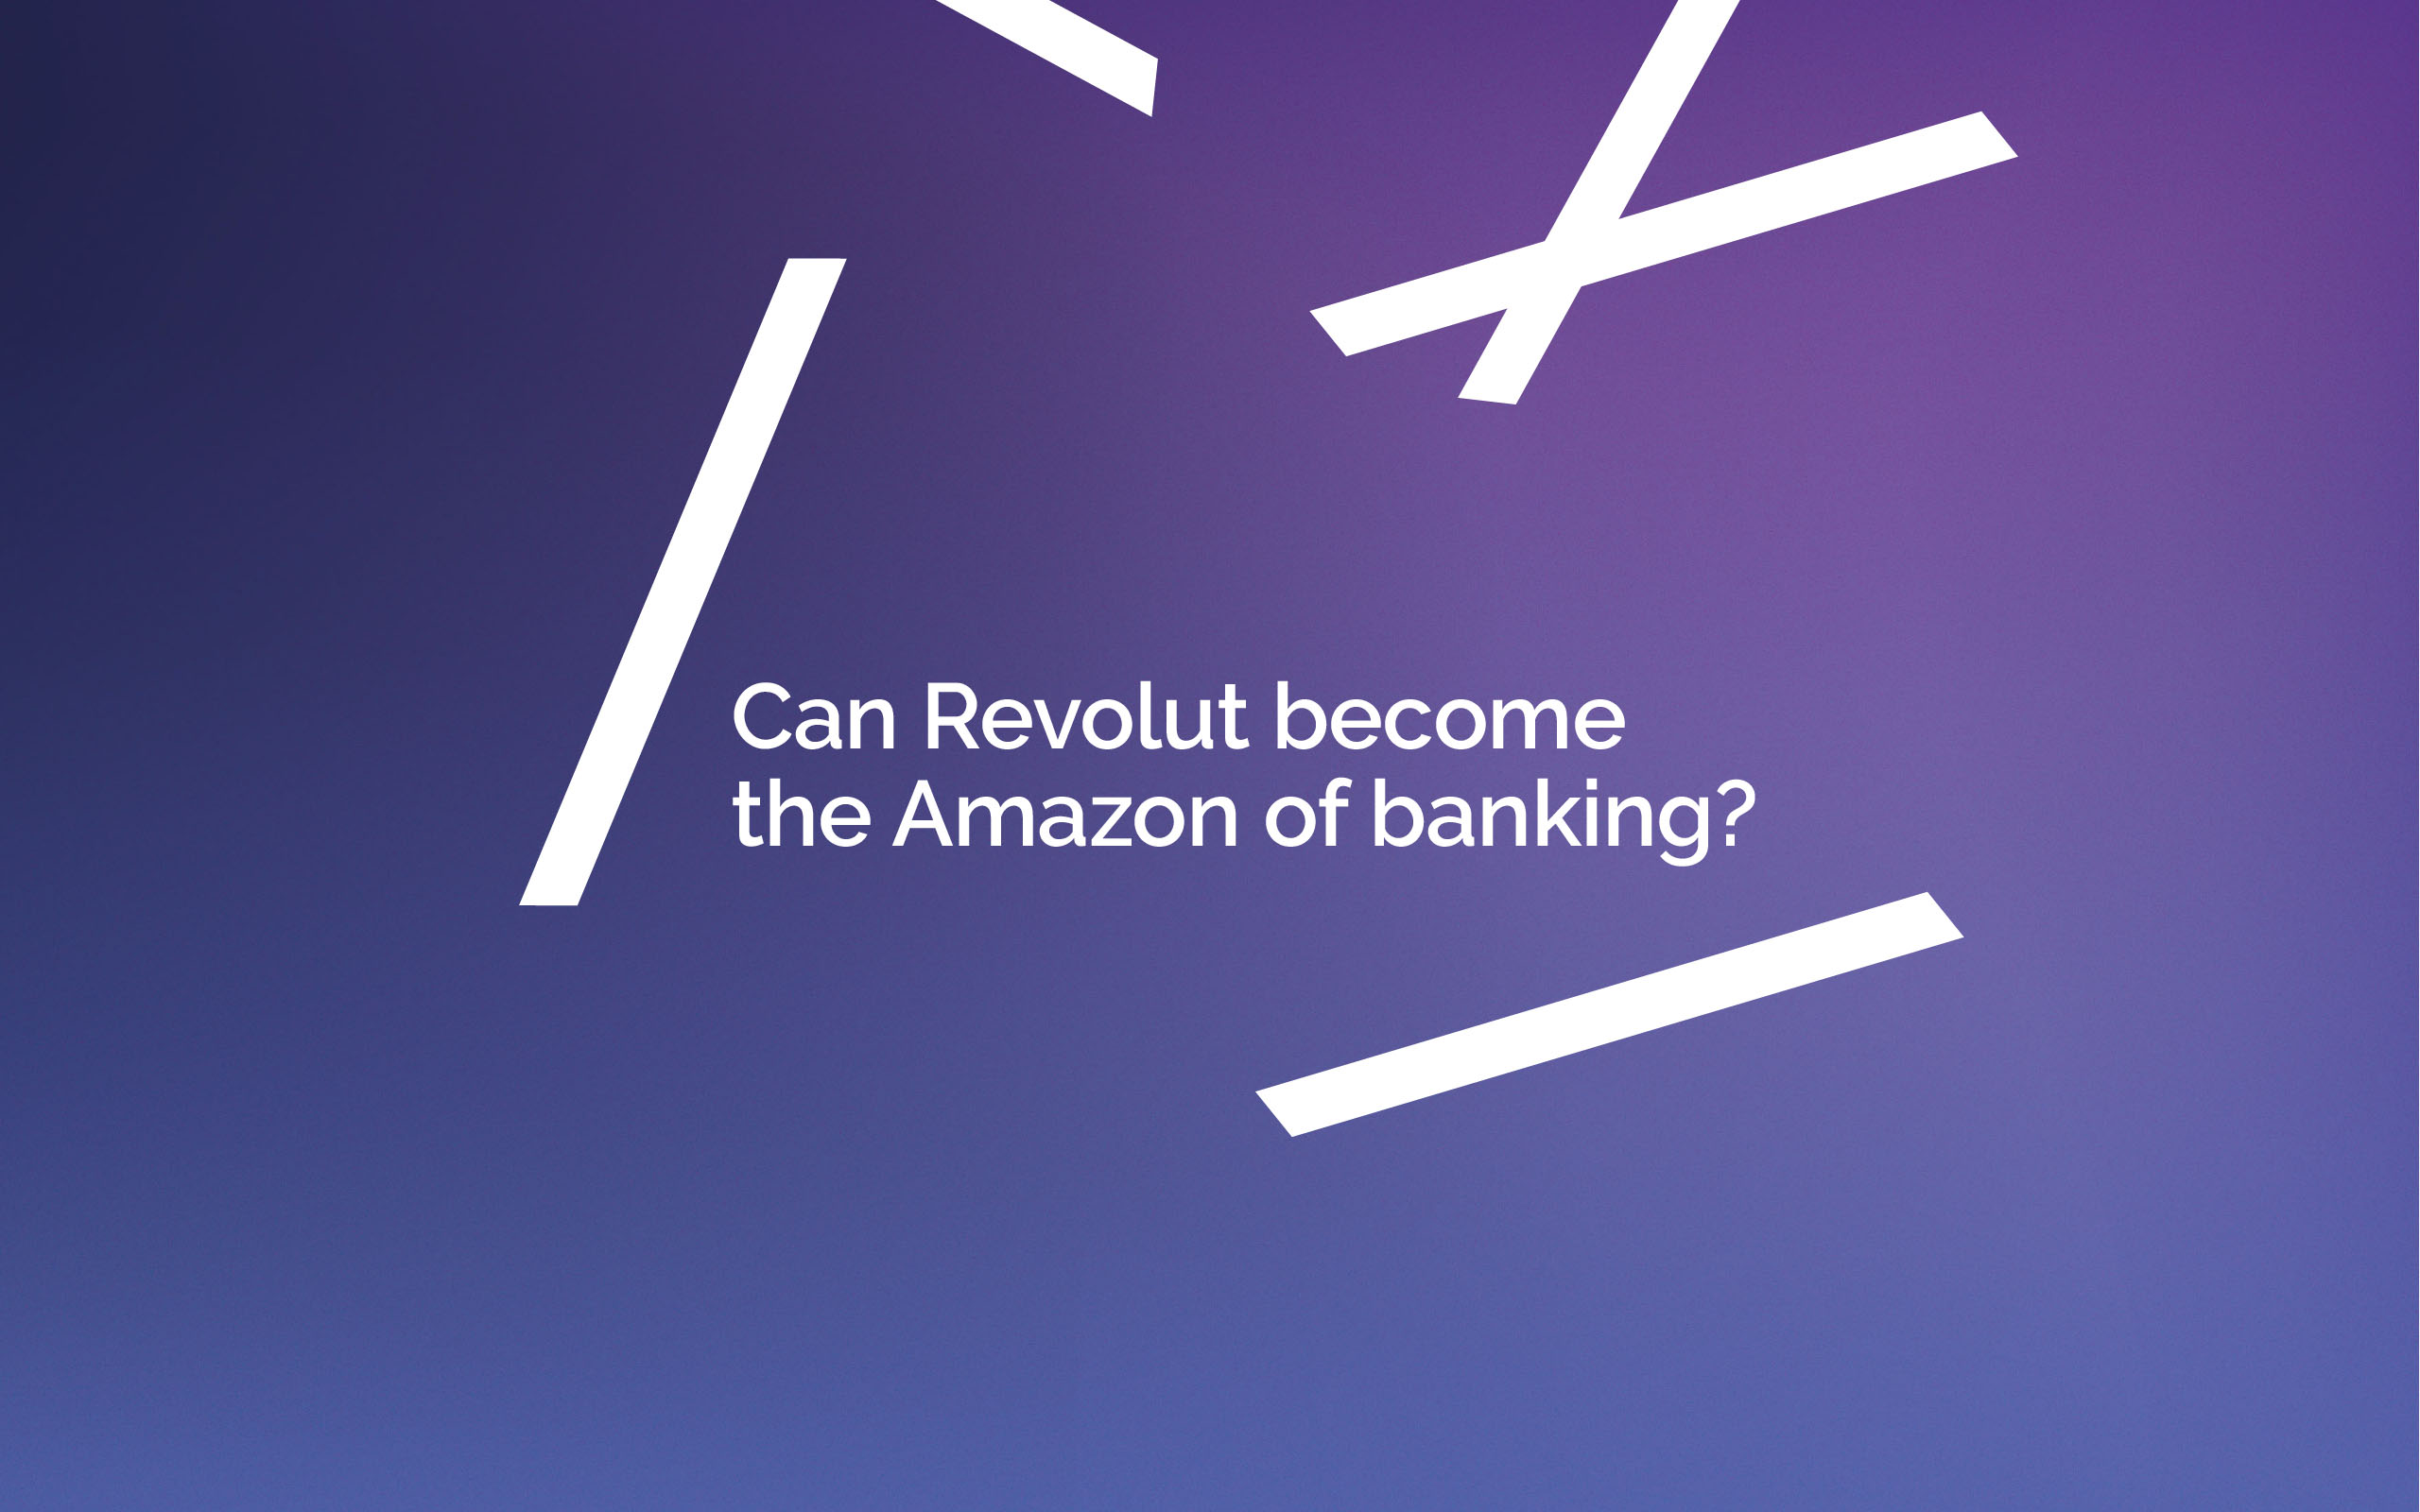 Can Revolut become the Amazon of banking?